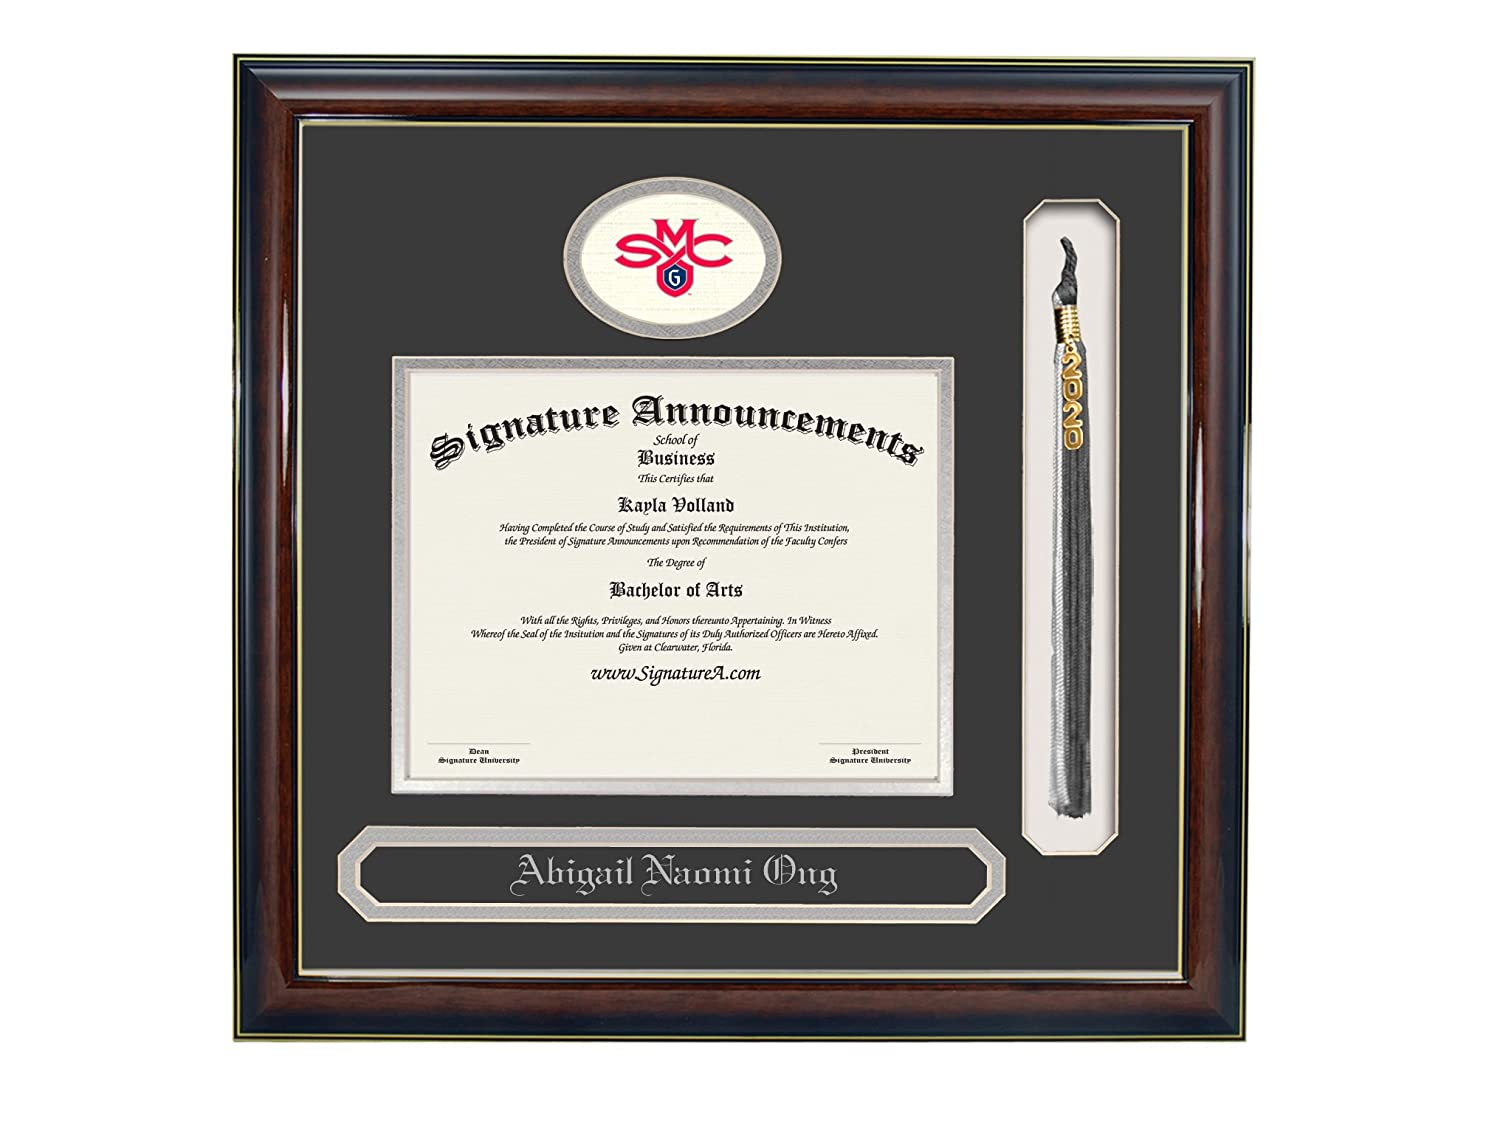 Signature Announcements Saint-Marys-College-of-California Undergraduate Name /& Tassel Graduation Diploma Frame Professional//Doctor Sculpted Foil Seal 16 x 16 Gold Accent Gloss Mahogany